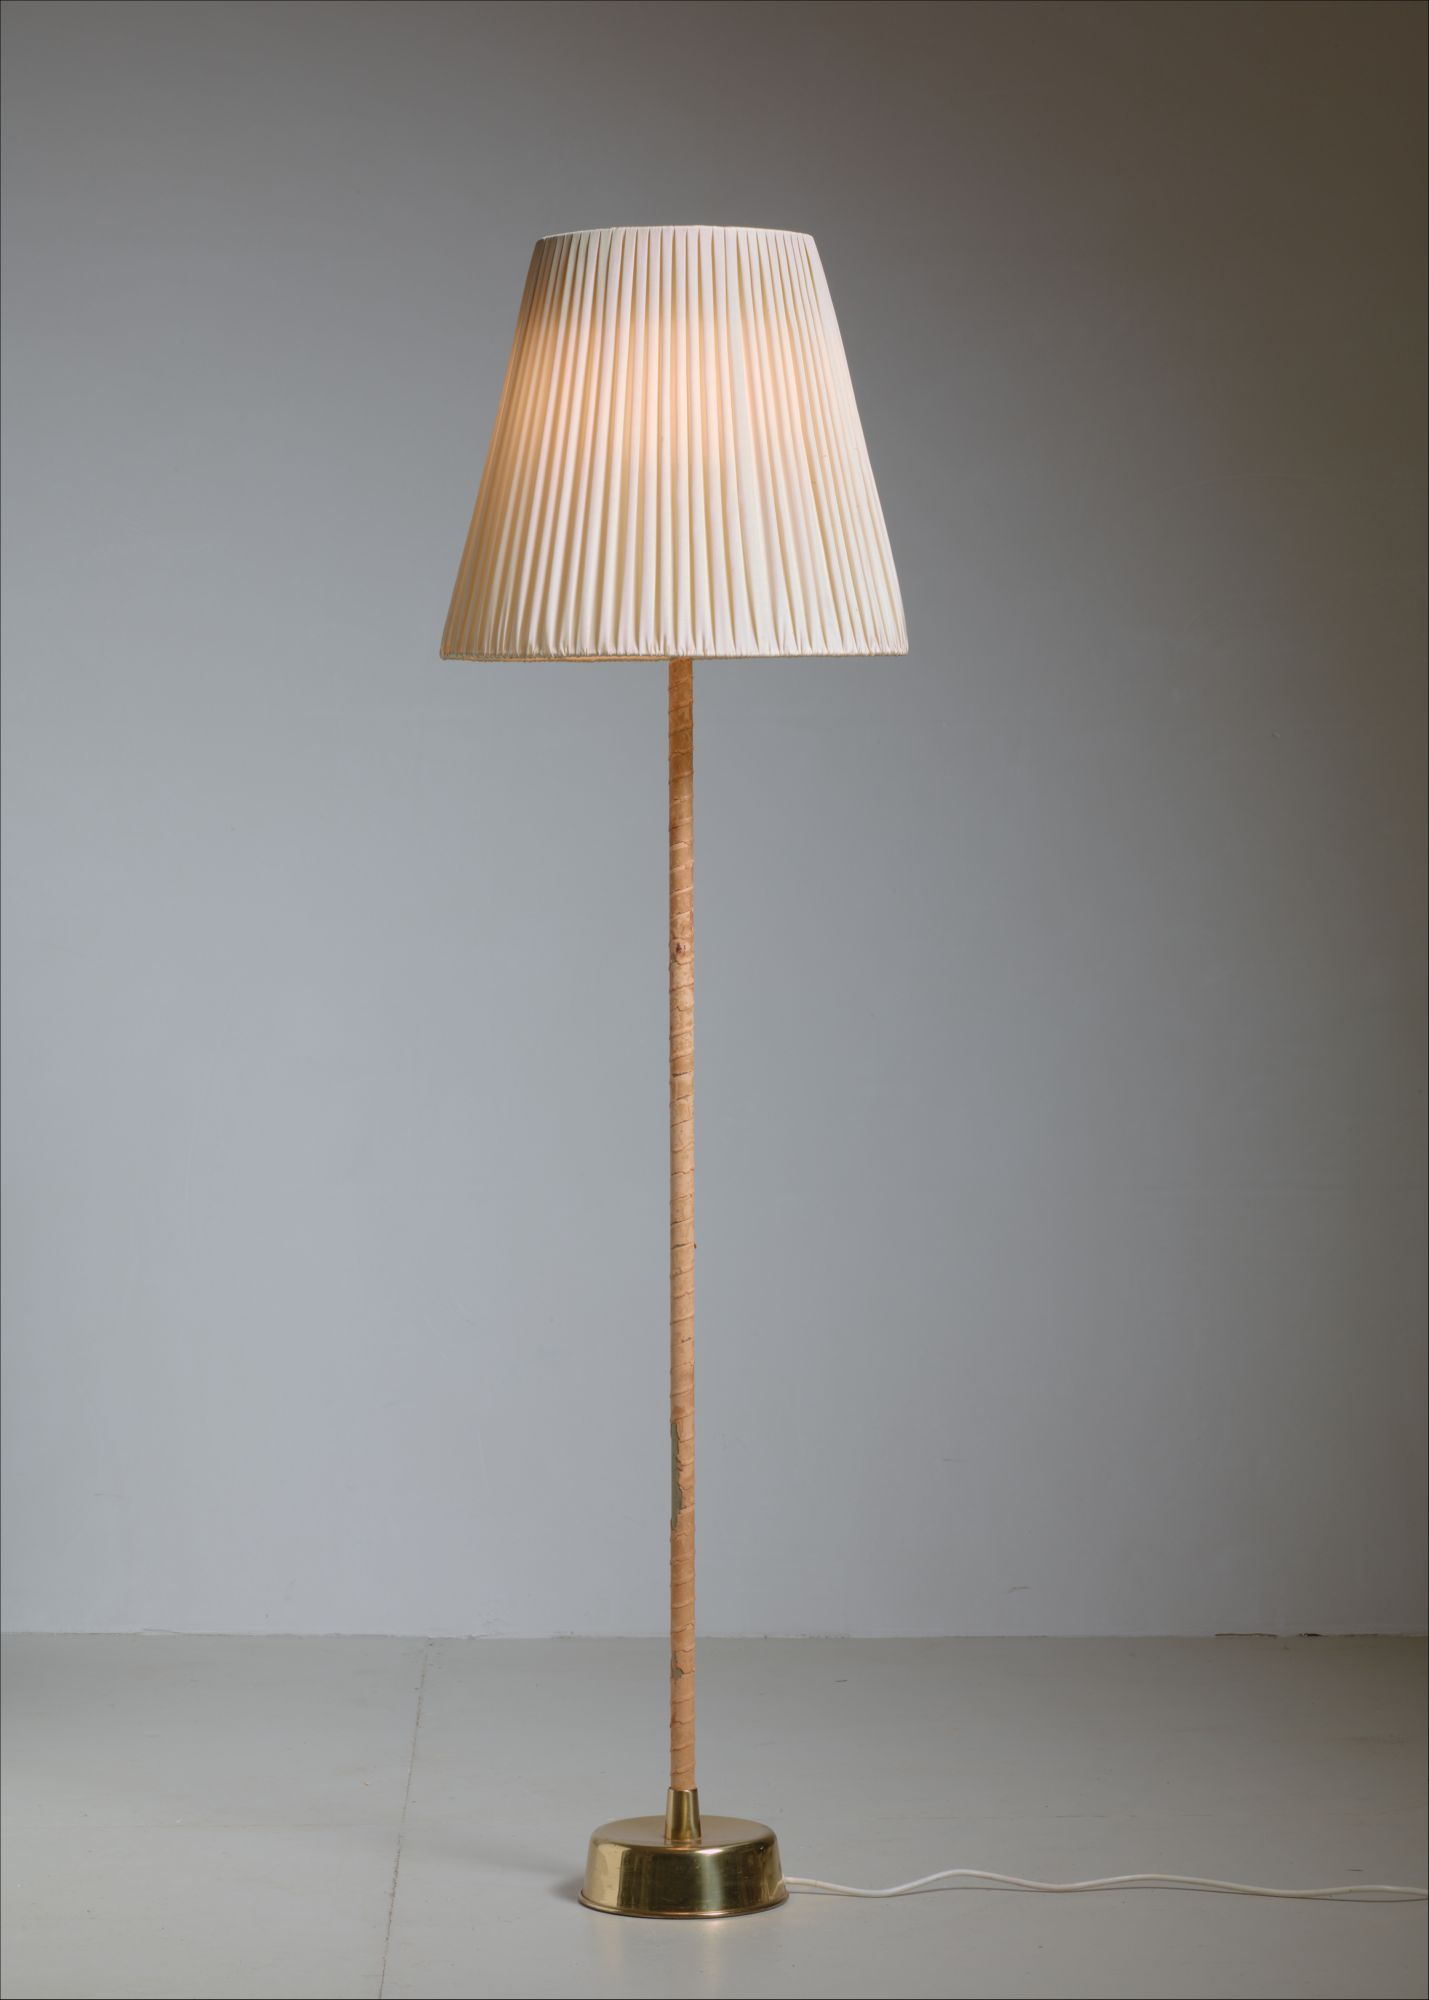 Lisa johansson pape floor lamp with leather stem and pleated fabric lisa johansson pape floor lamp with leather stem and pleated fabric shade 1950 aloadofball Image collections